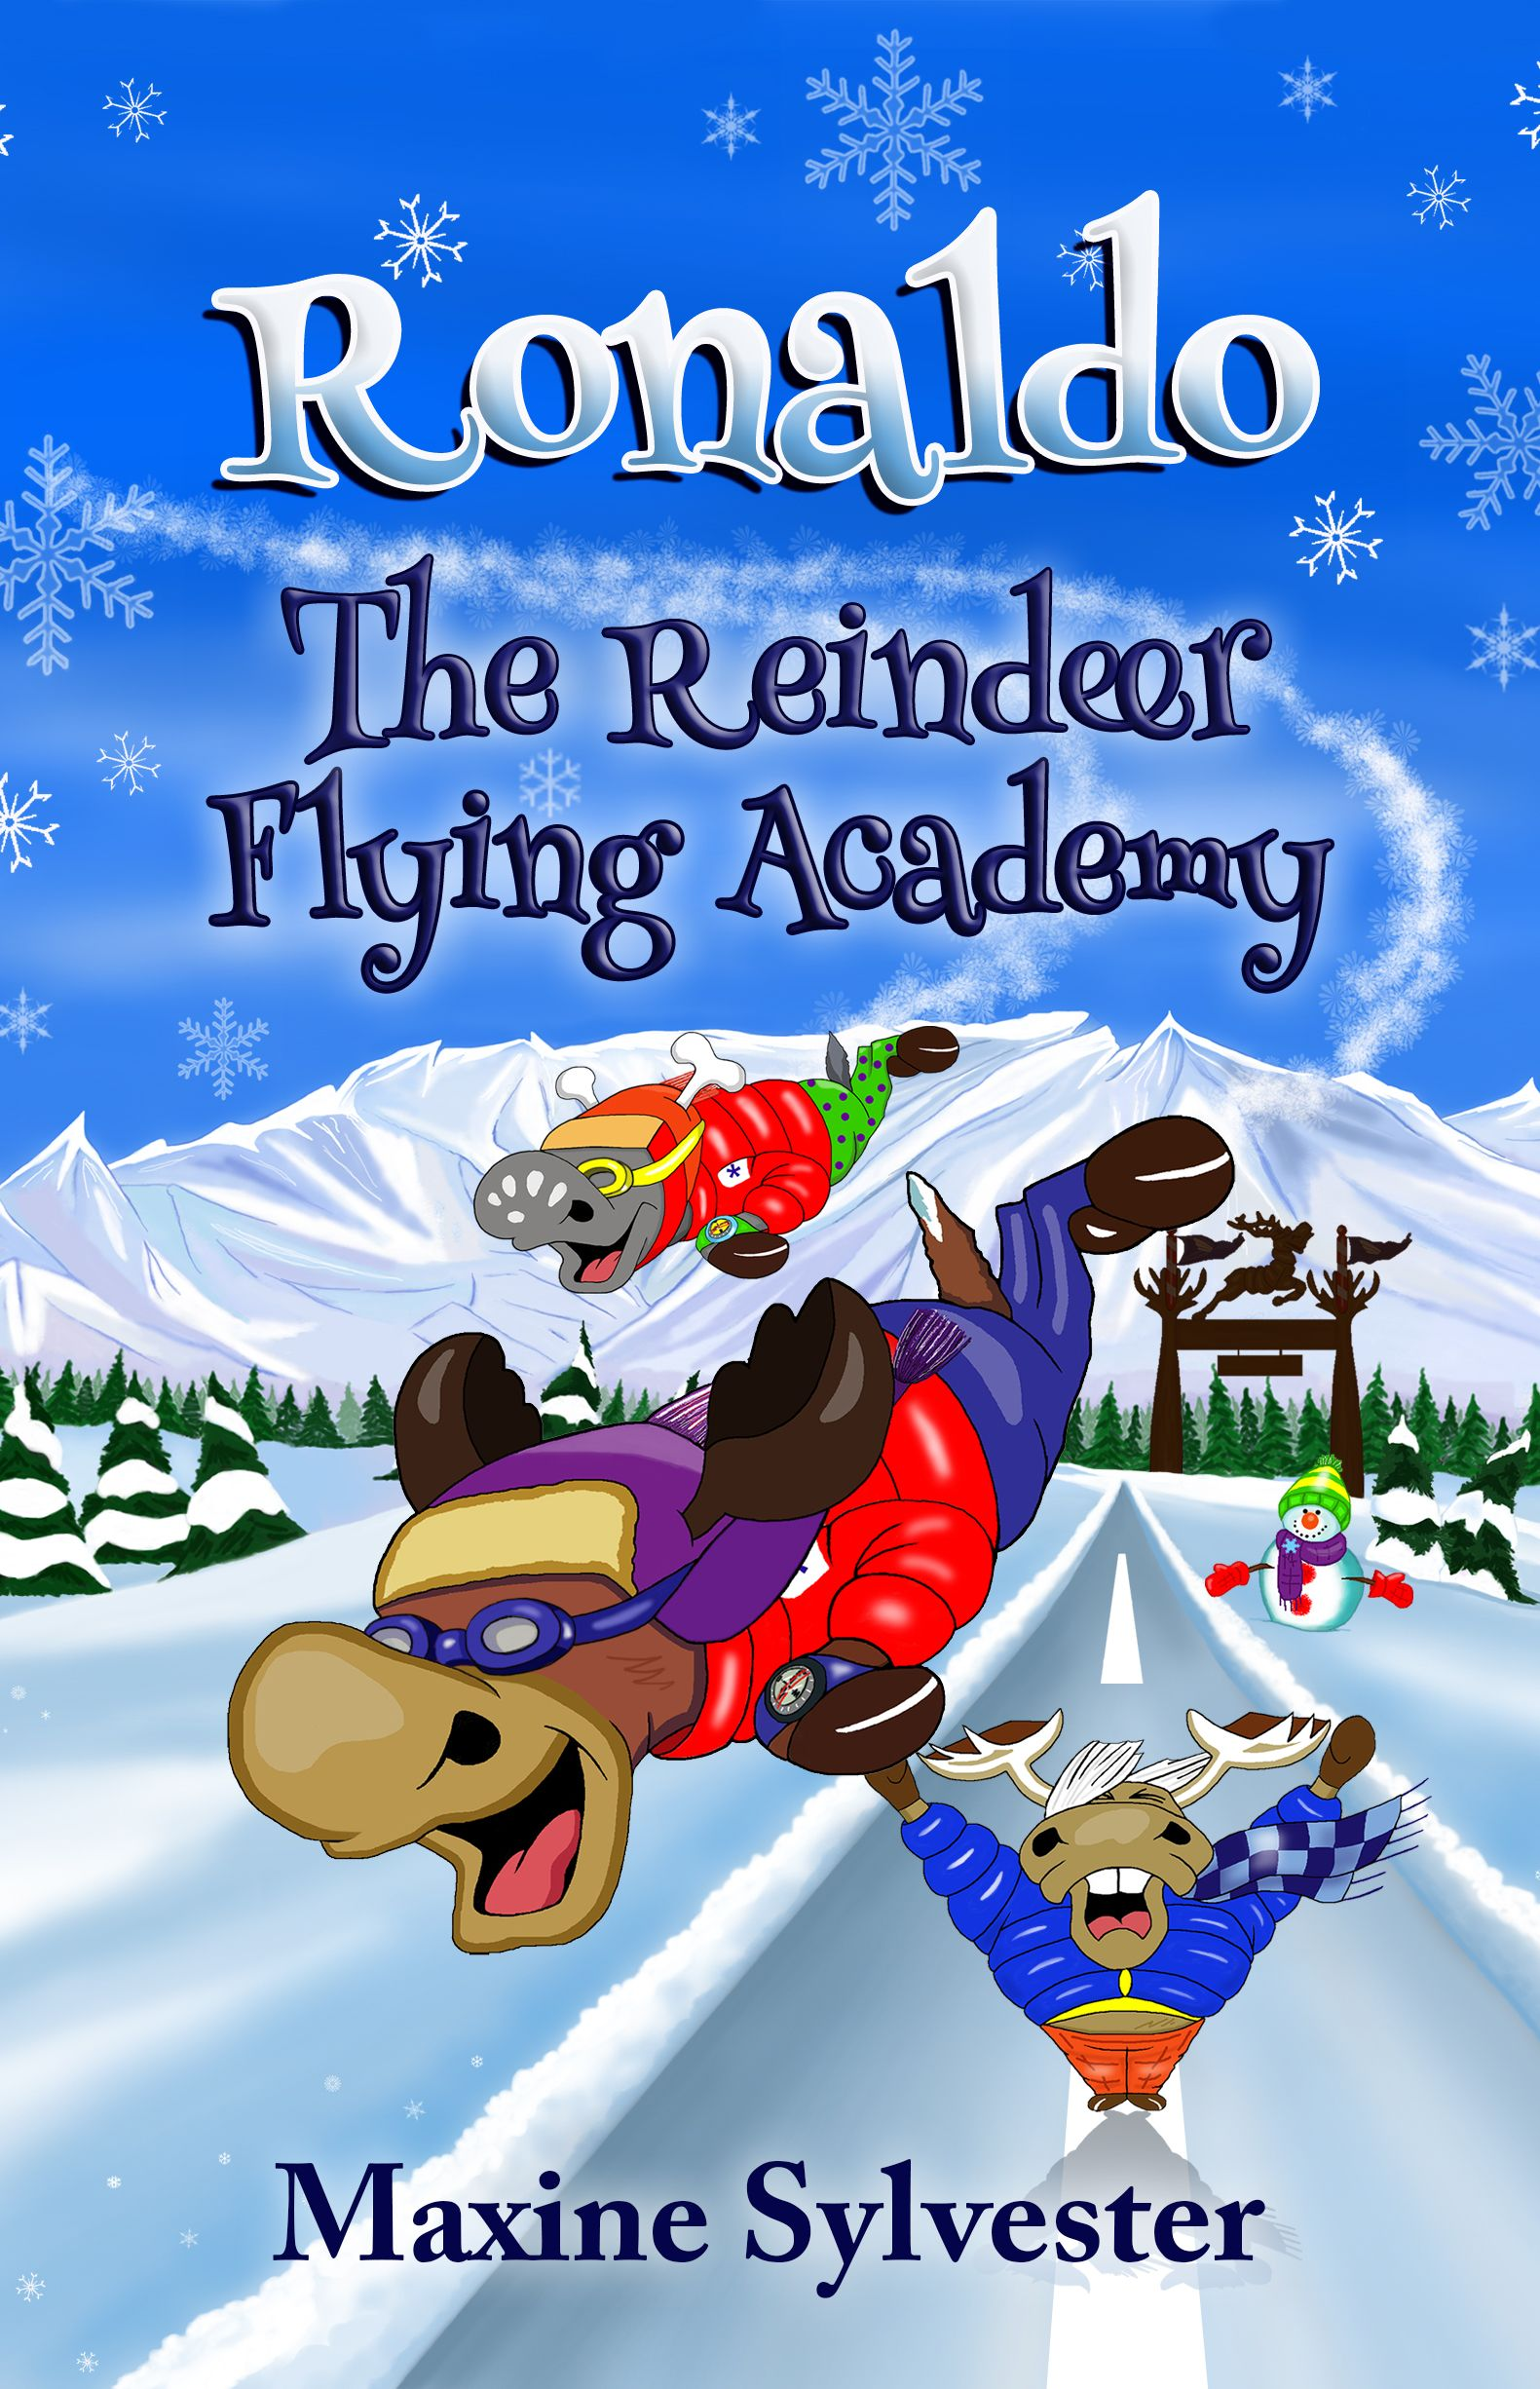 Ronaldo: The Reindeer Flying Academy - An Illustrated Early Readers Chapter Book for Kids 6-10's Ebook Image